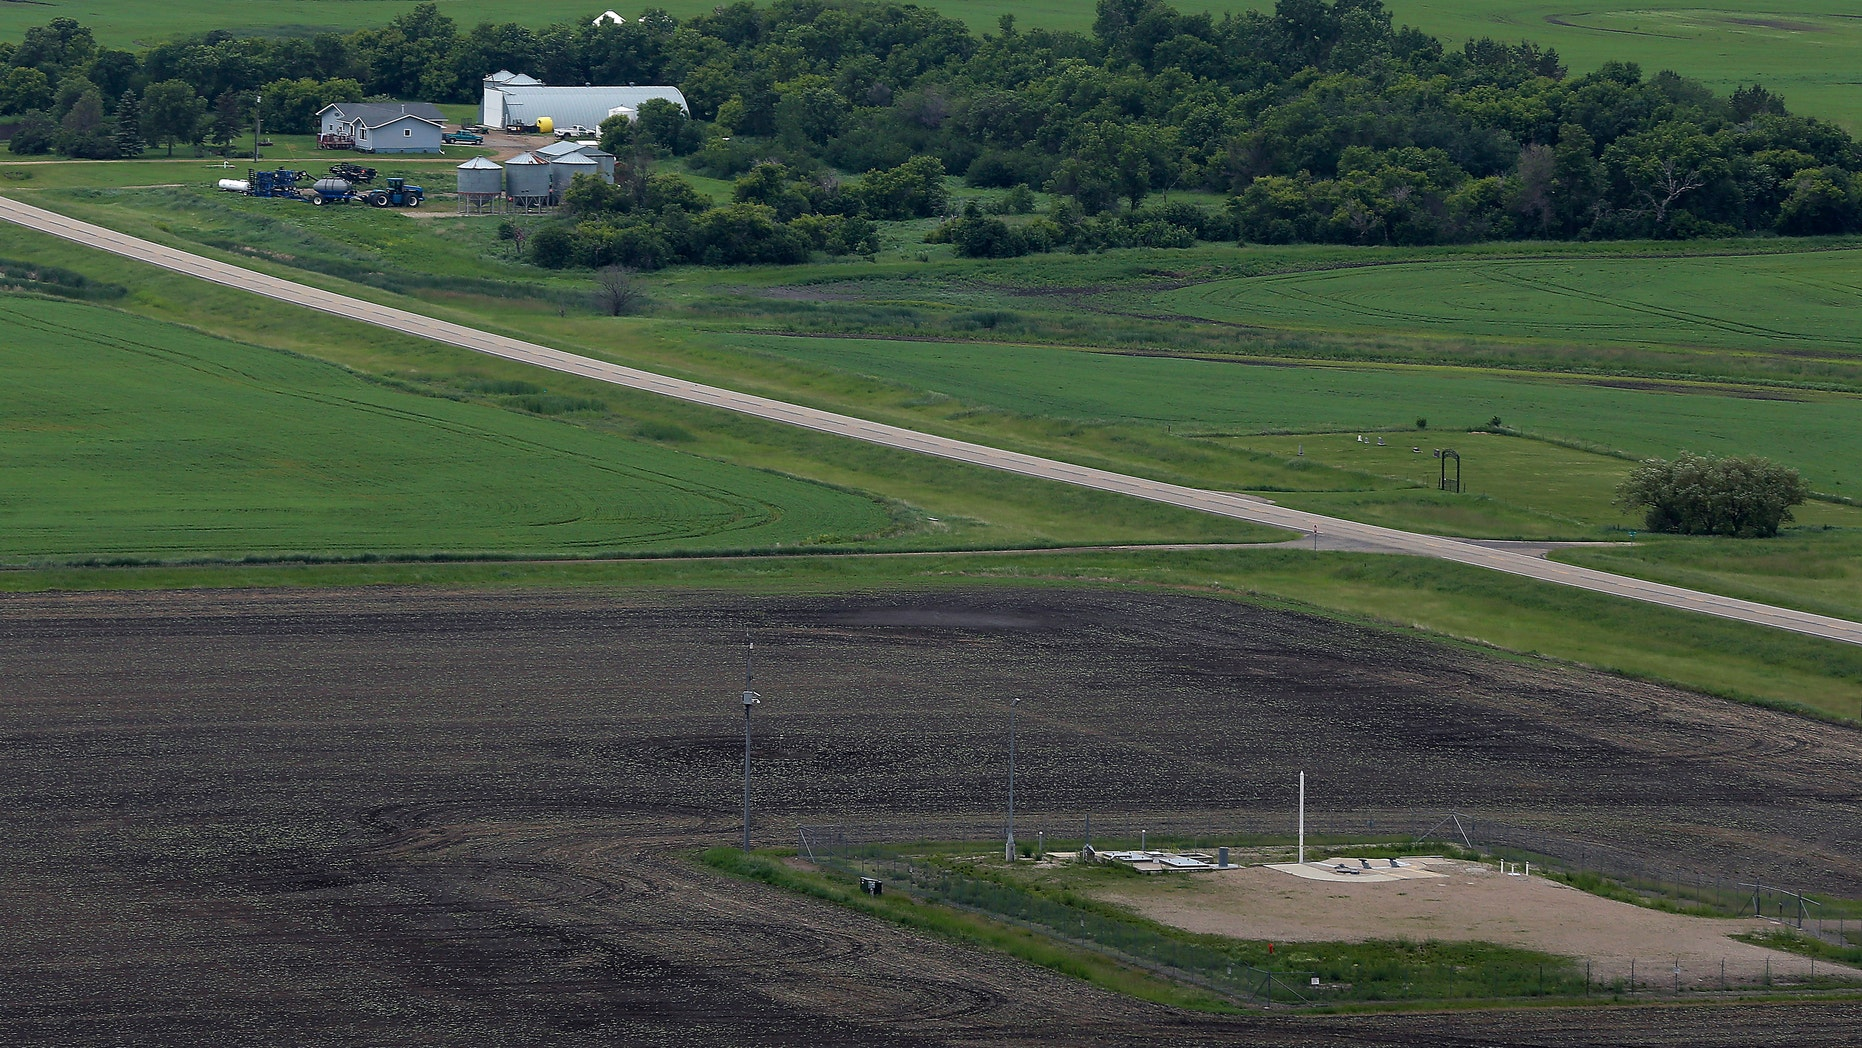 June 24, 2014: ICBM launch site located among fields and farms in the countryside outside Minot, N.D.